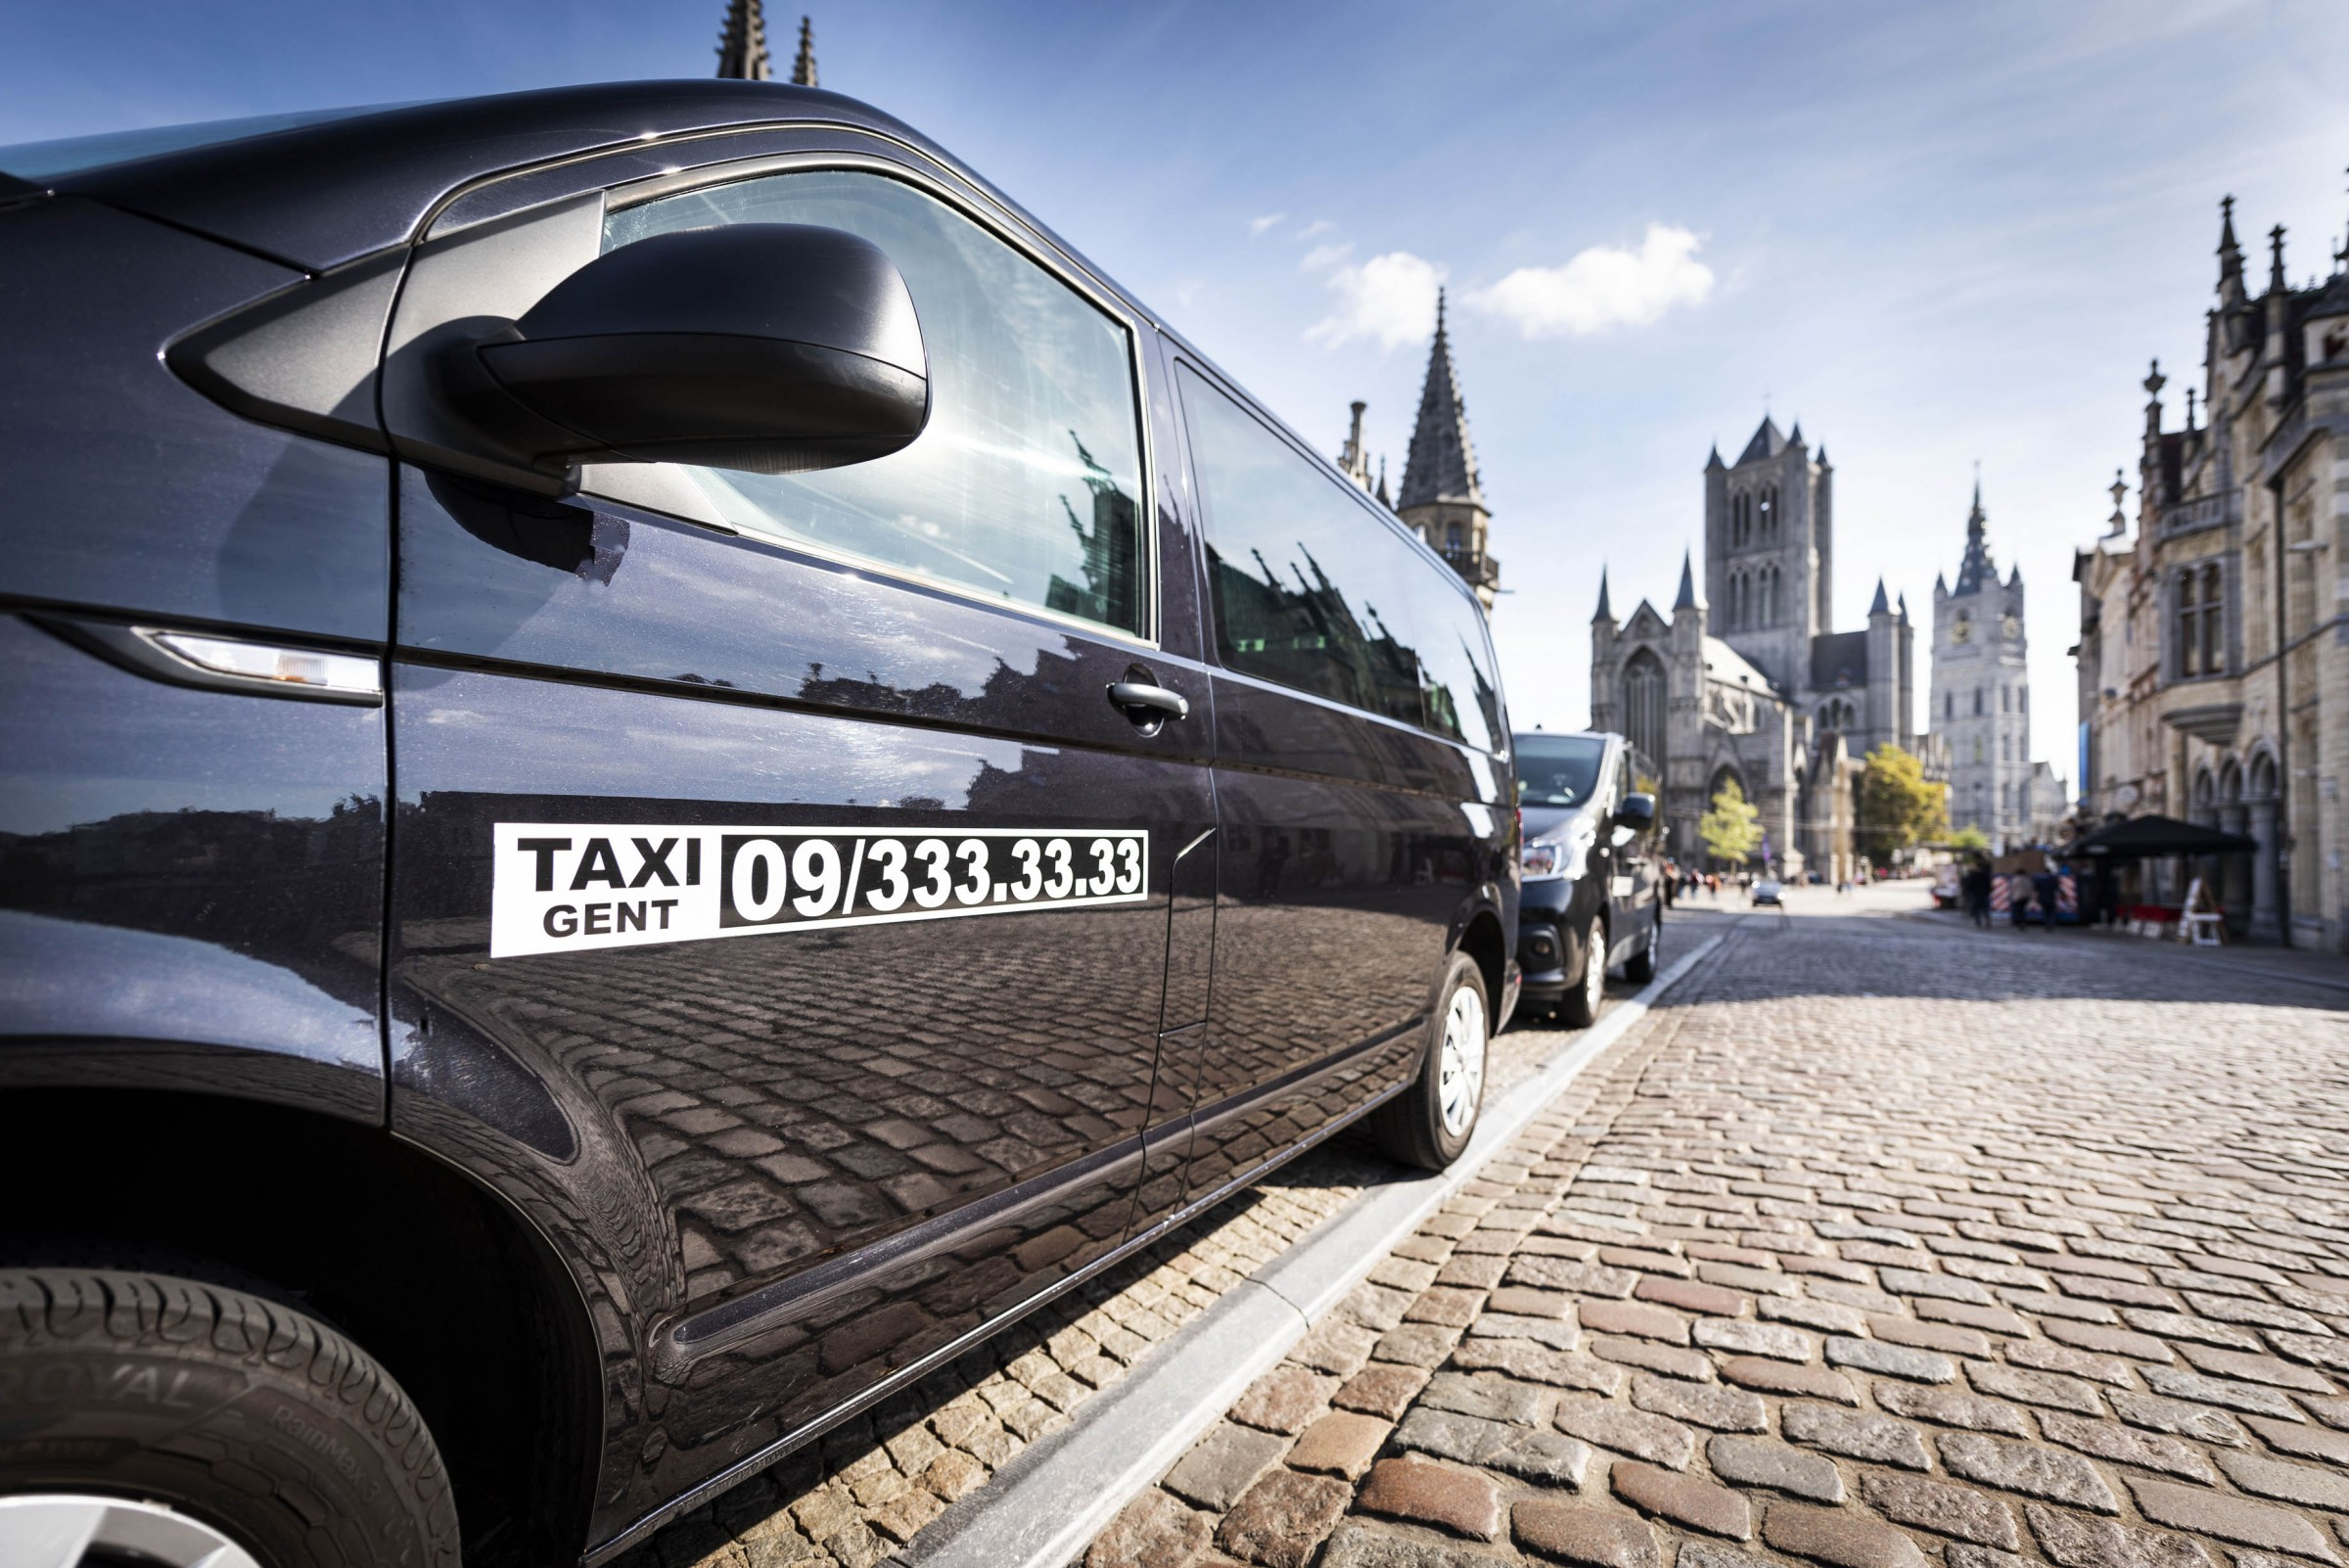 Taxi's-Gent-05.jpg